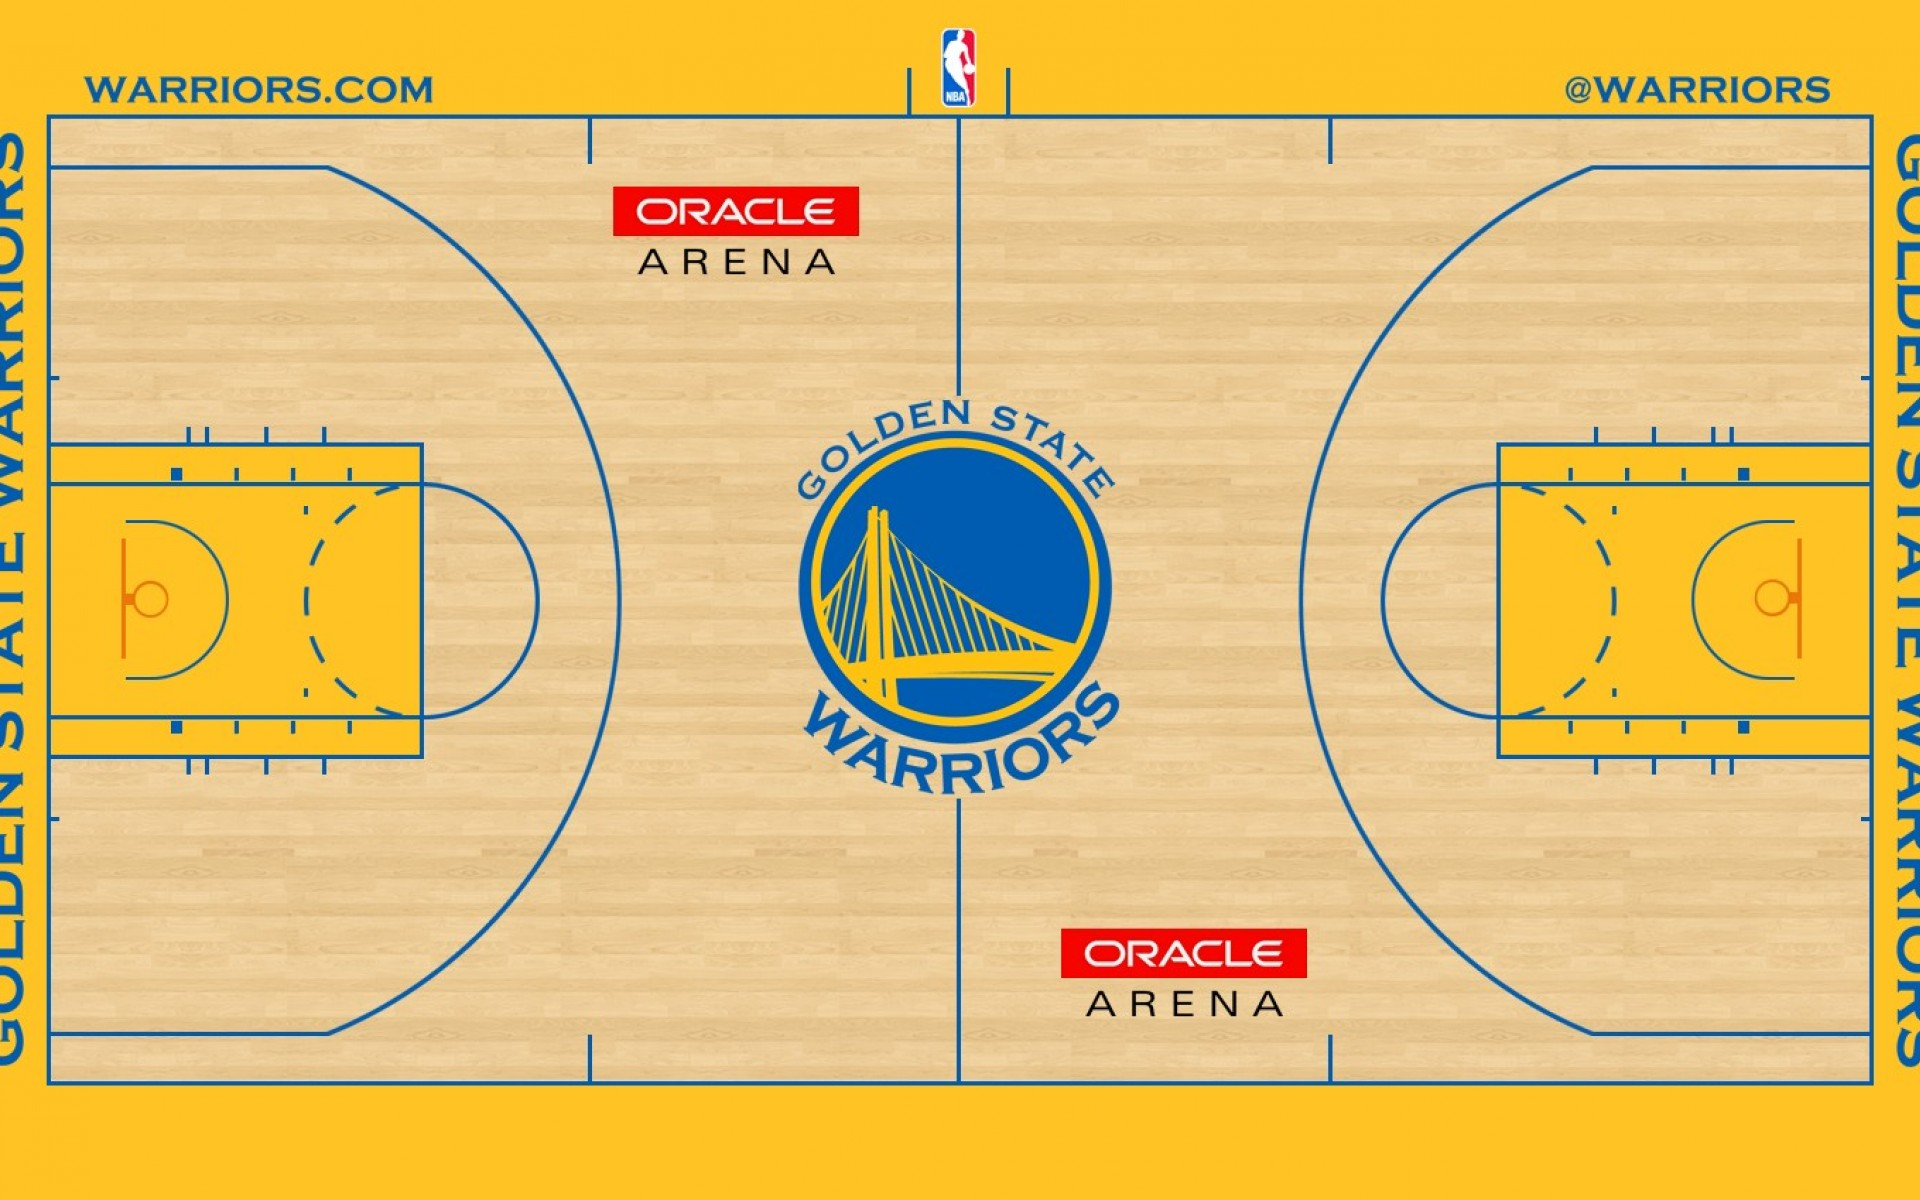 Golden State Warriors Wallpapers Nba Basketball Game San Francisco 1920x1200